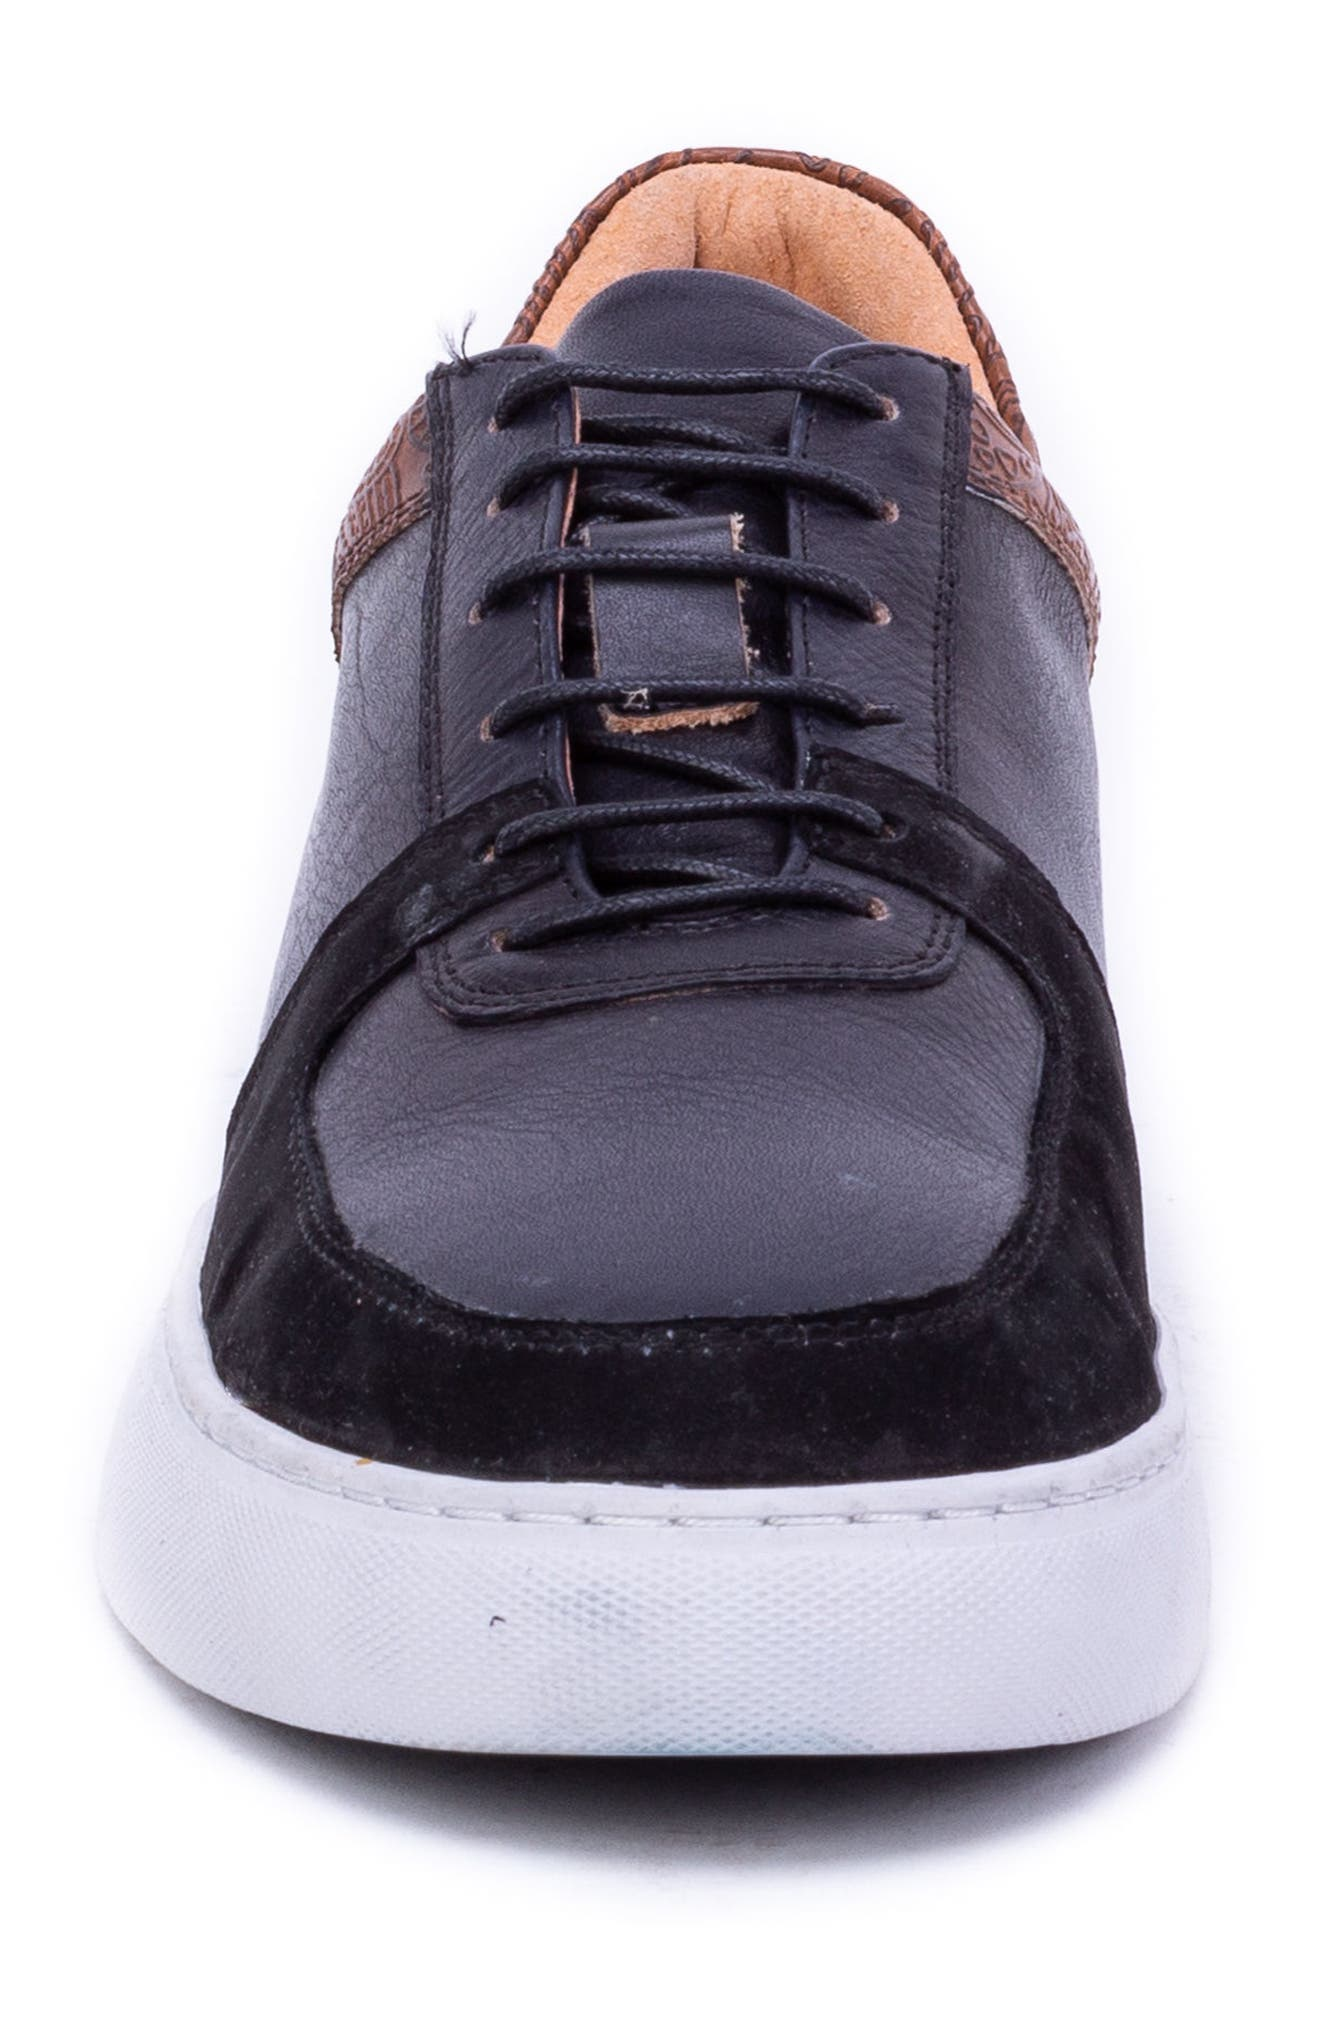 Chadwick Paisley Tooled Sneaker,                             Alternate thumbnail 4, color,                             BLACK LEATHER/ SUEDE